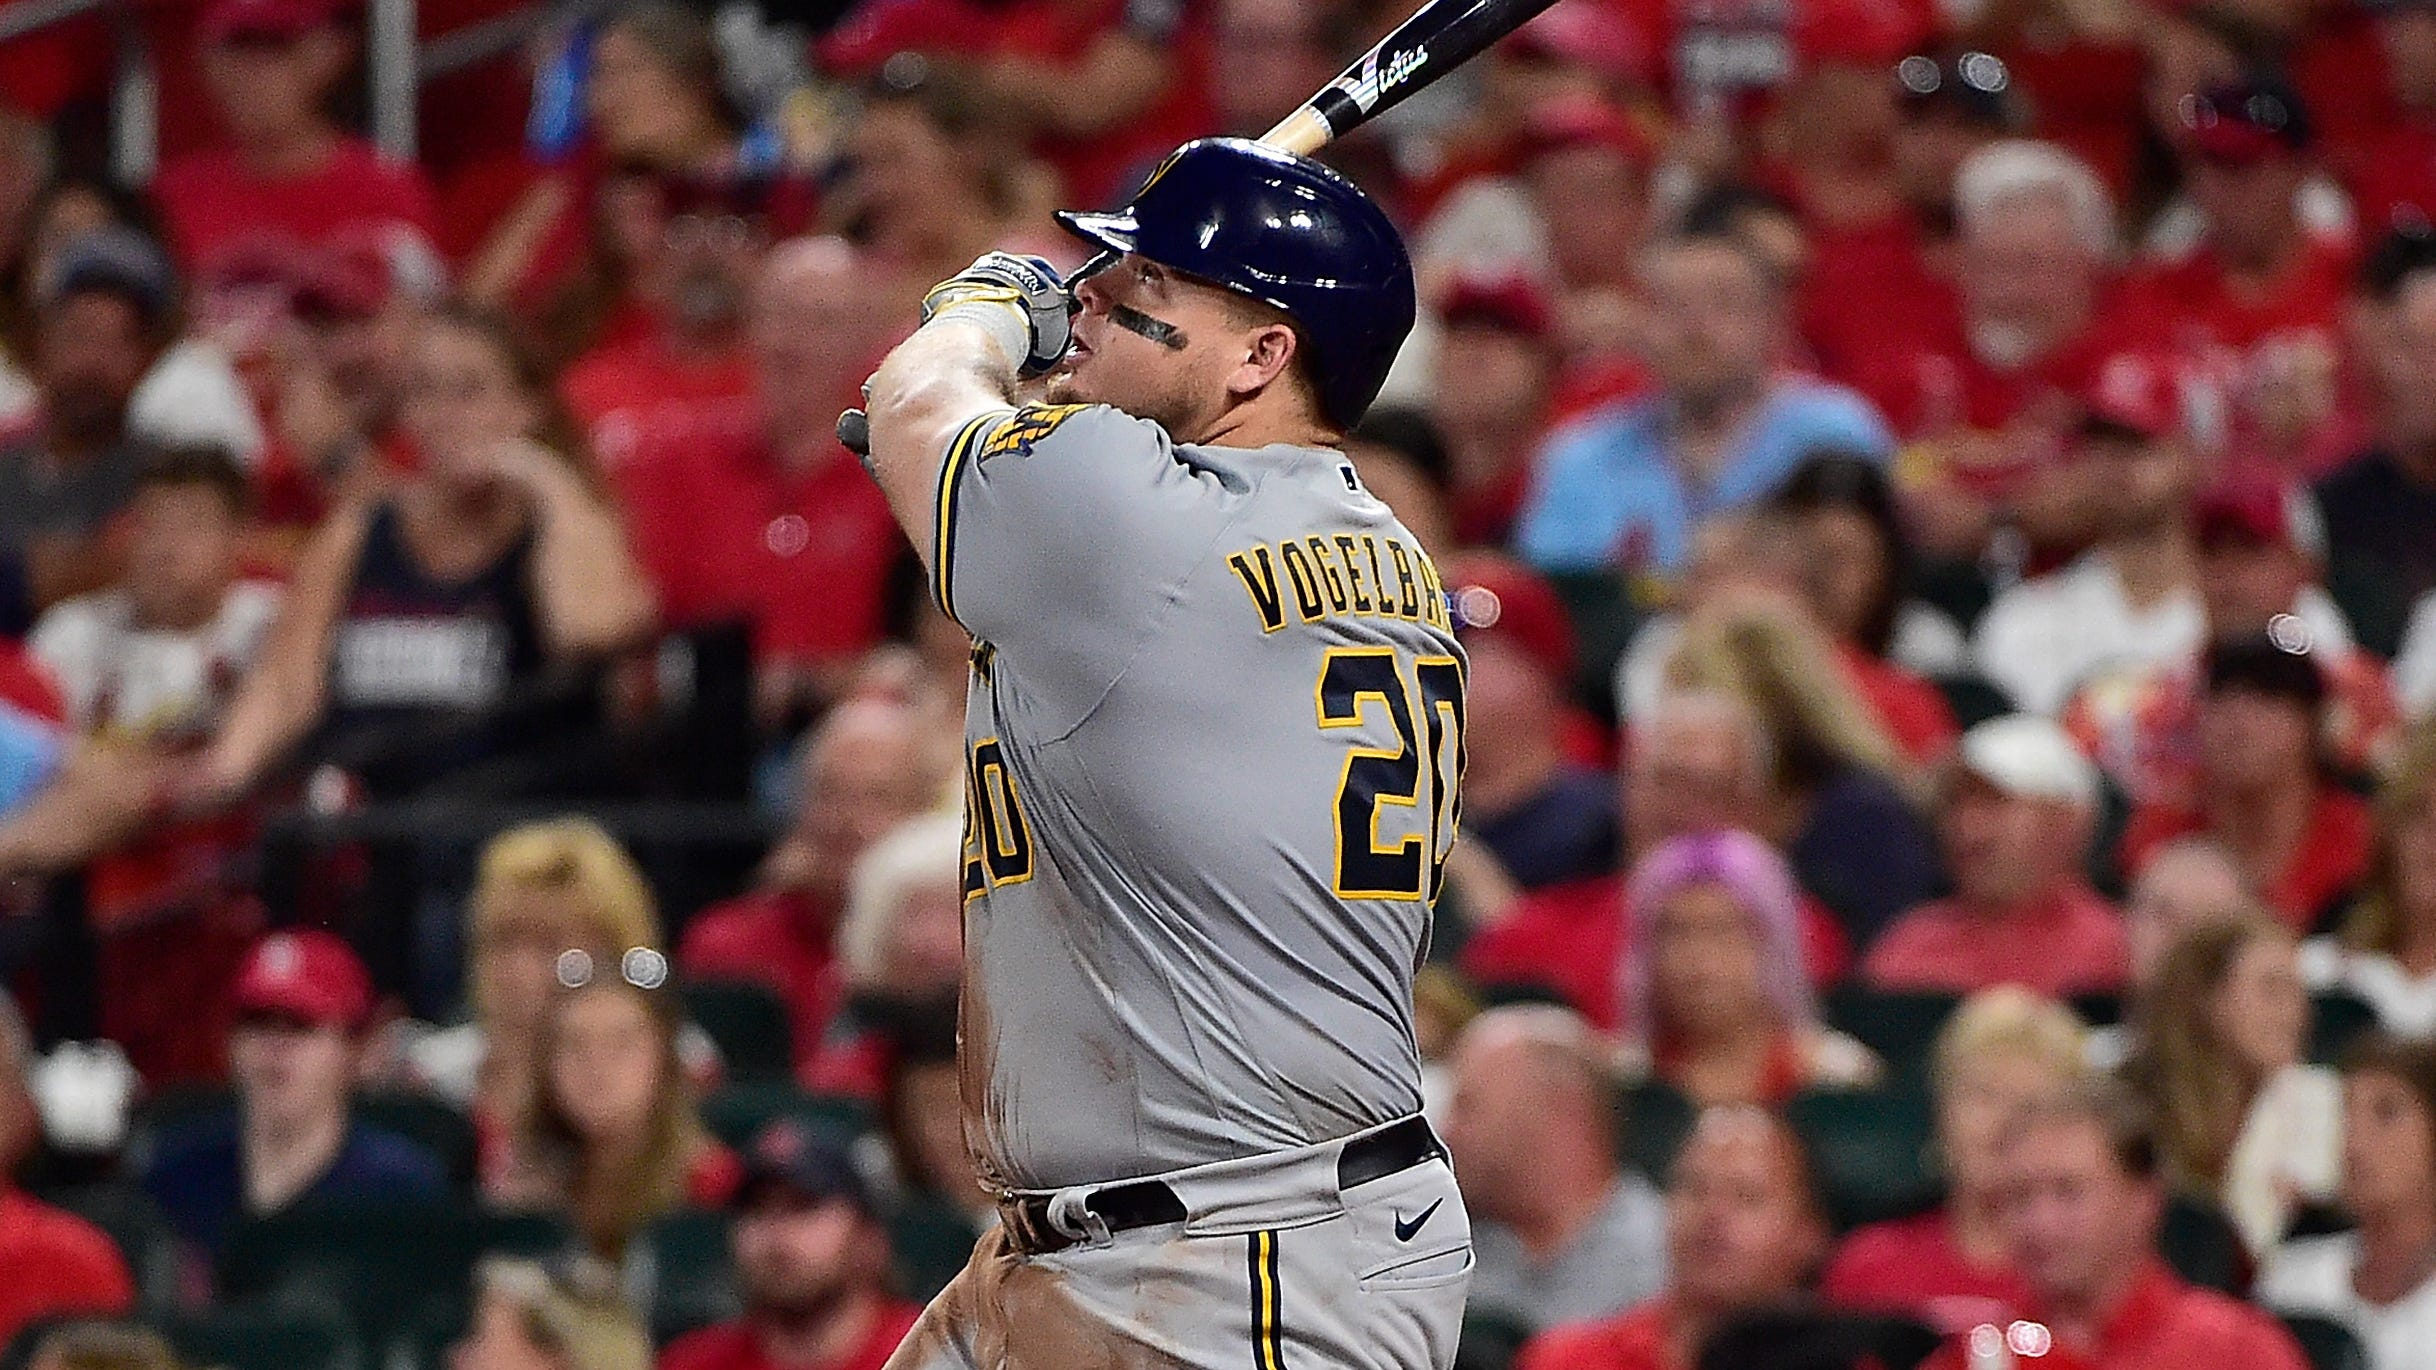 Daniel Vogelbach hits a two-run home run during the sixth inning against the St. Louis Cardinals.